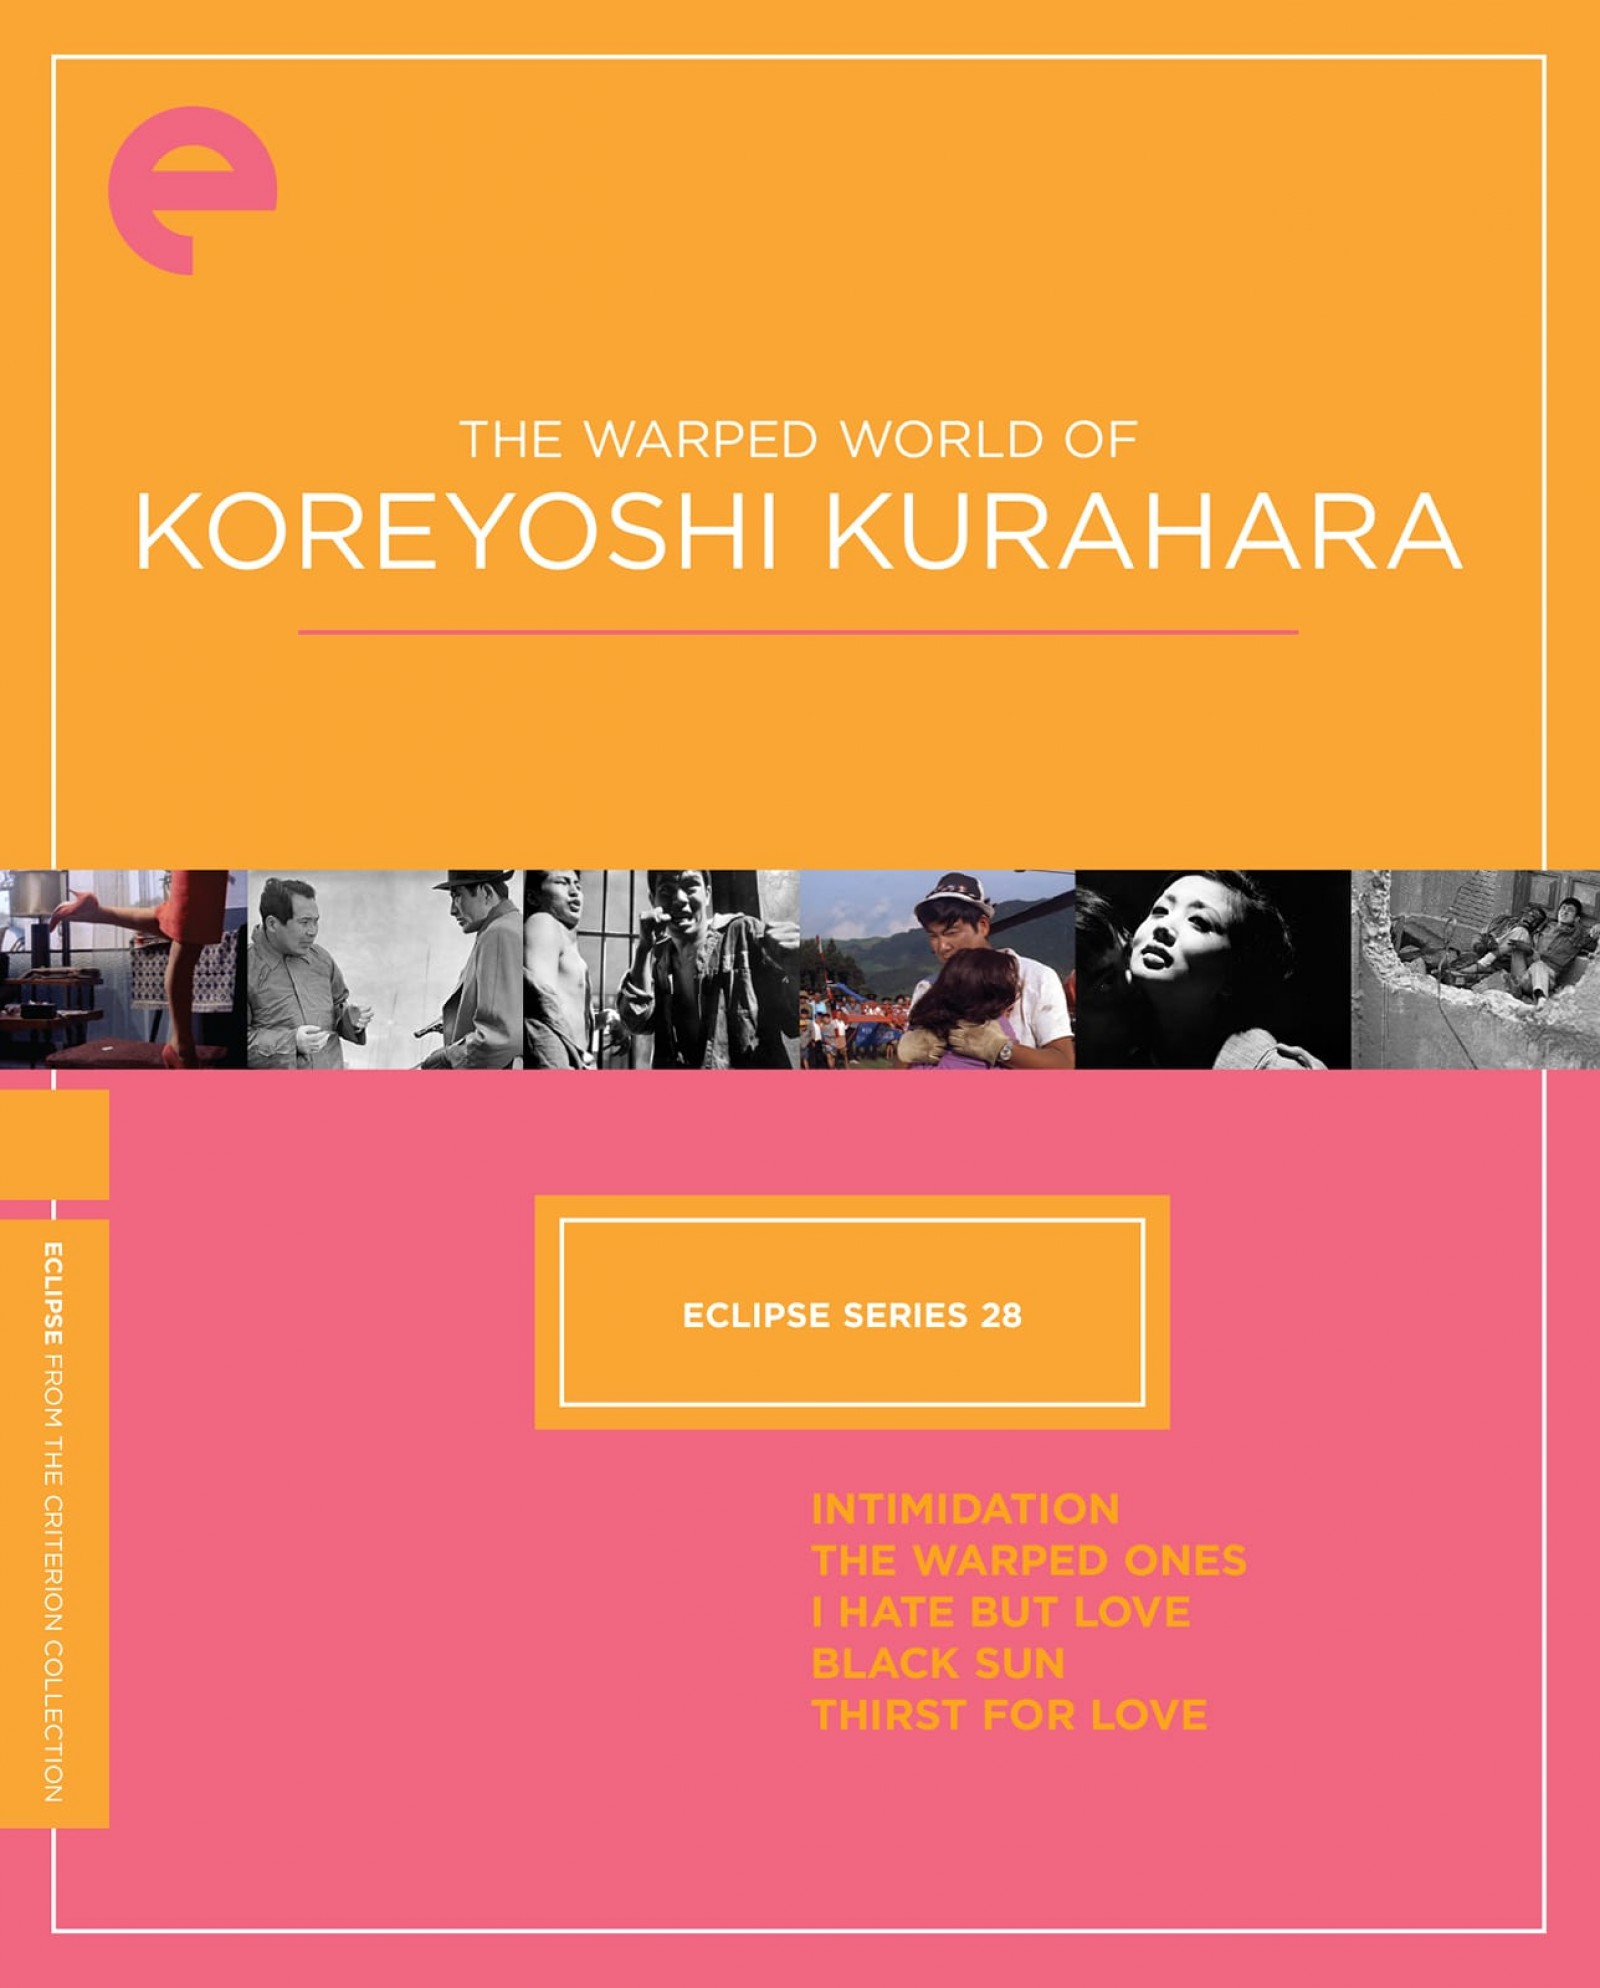 Eclipse Series 28: The Warped World of Koreyoshi Kurahara